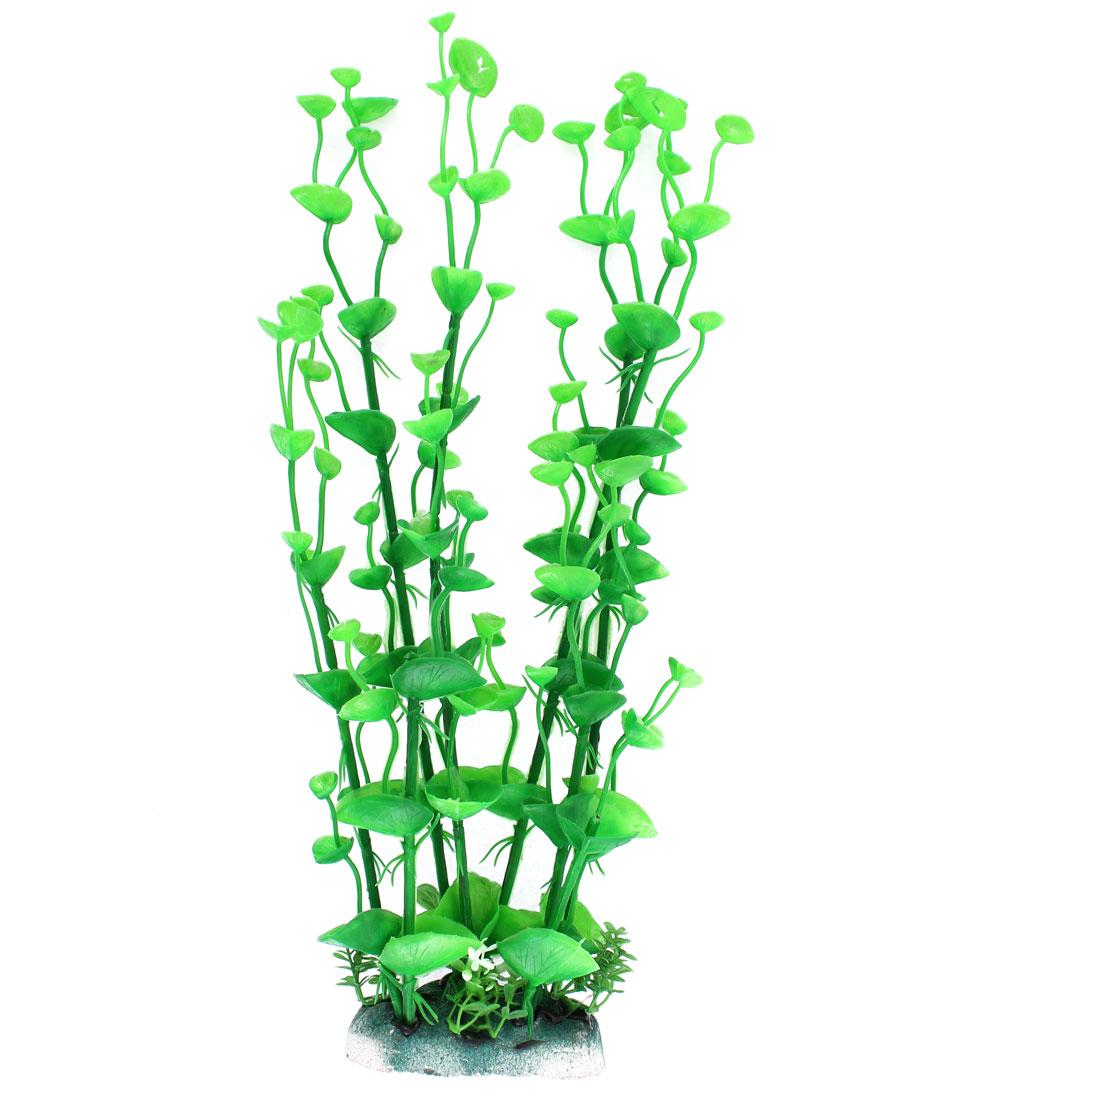 Aquarium Plastic Artificial Water Plant Grass Embellishment Green 34cm Height